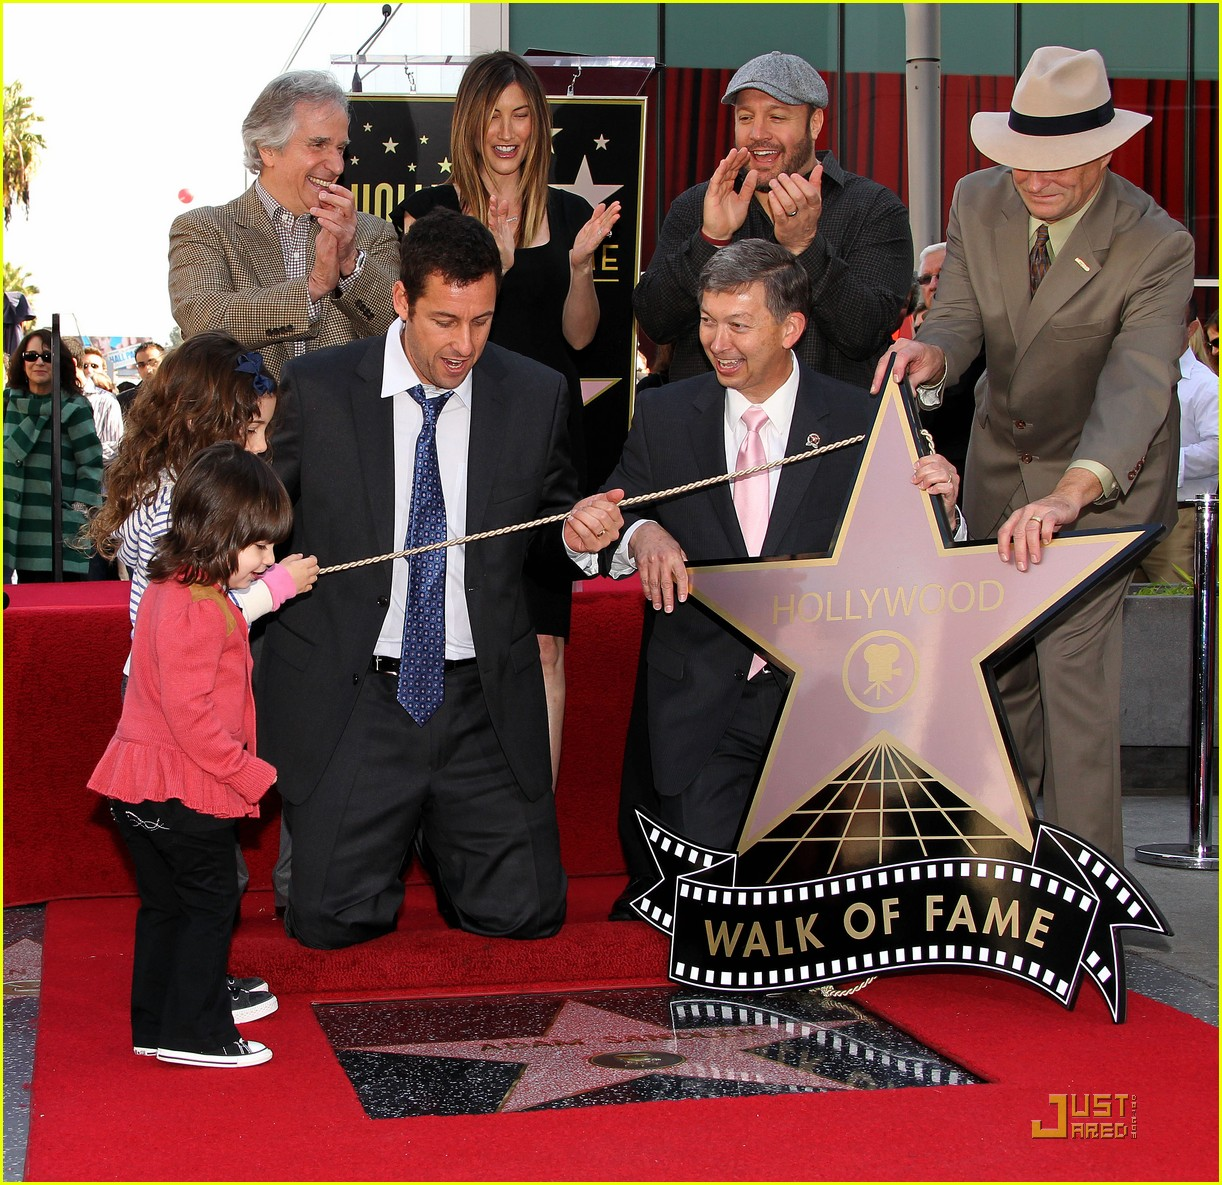 Adam Sandler Pictures >> Full Sized Photo of adam sandler hollywood star walk fame 13 | Photo 2516141 | Just Jared